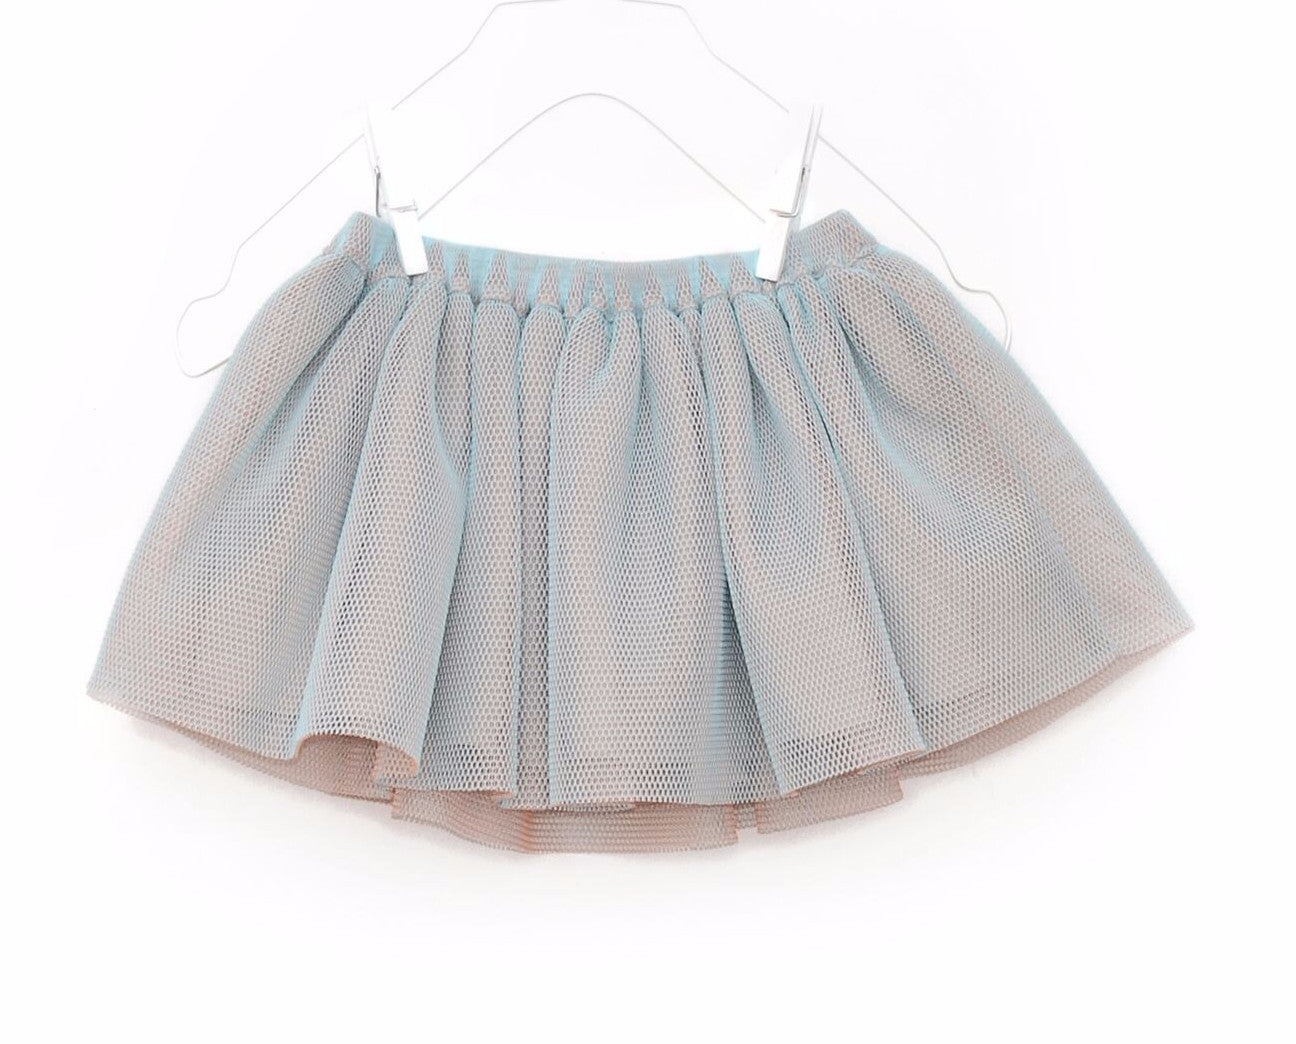 Little Man Happy Shimmer Ballet Skirt on DLK